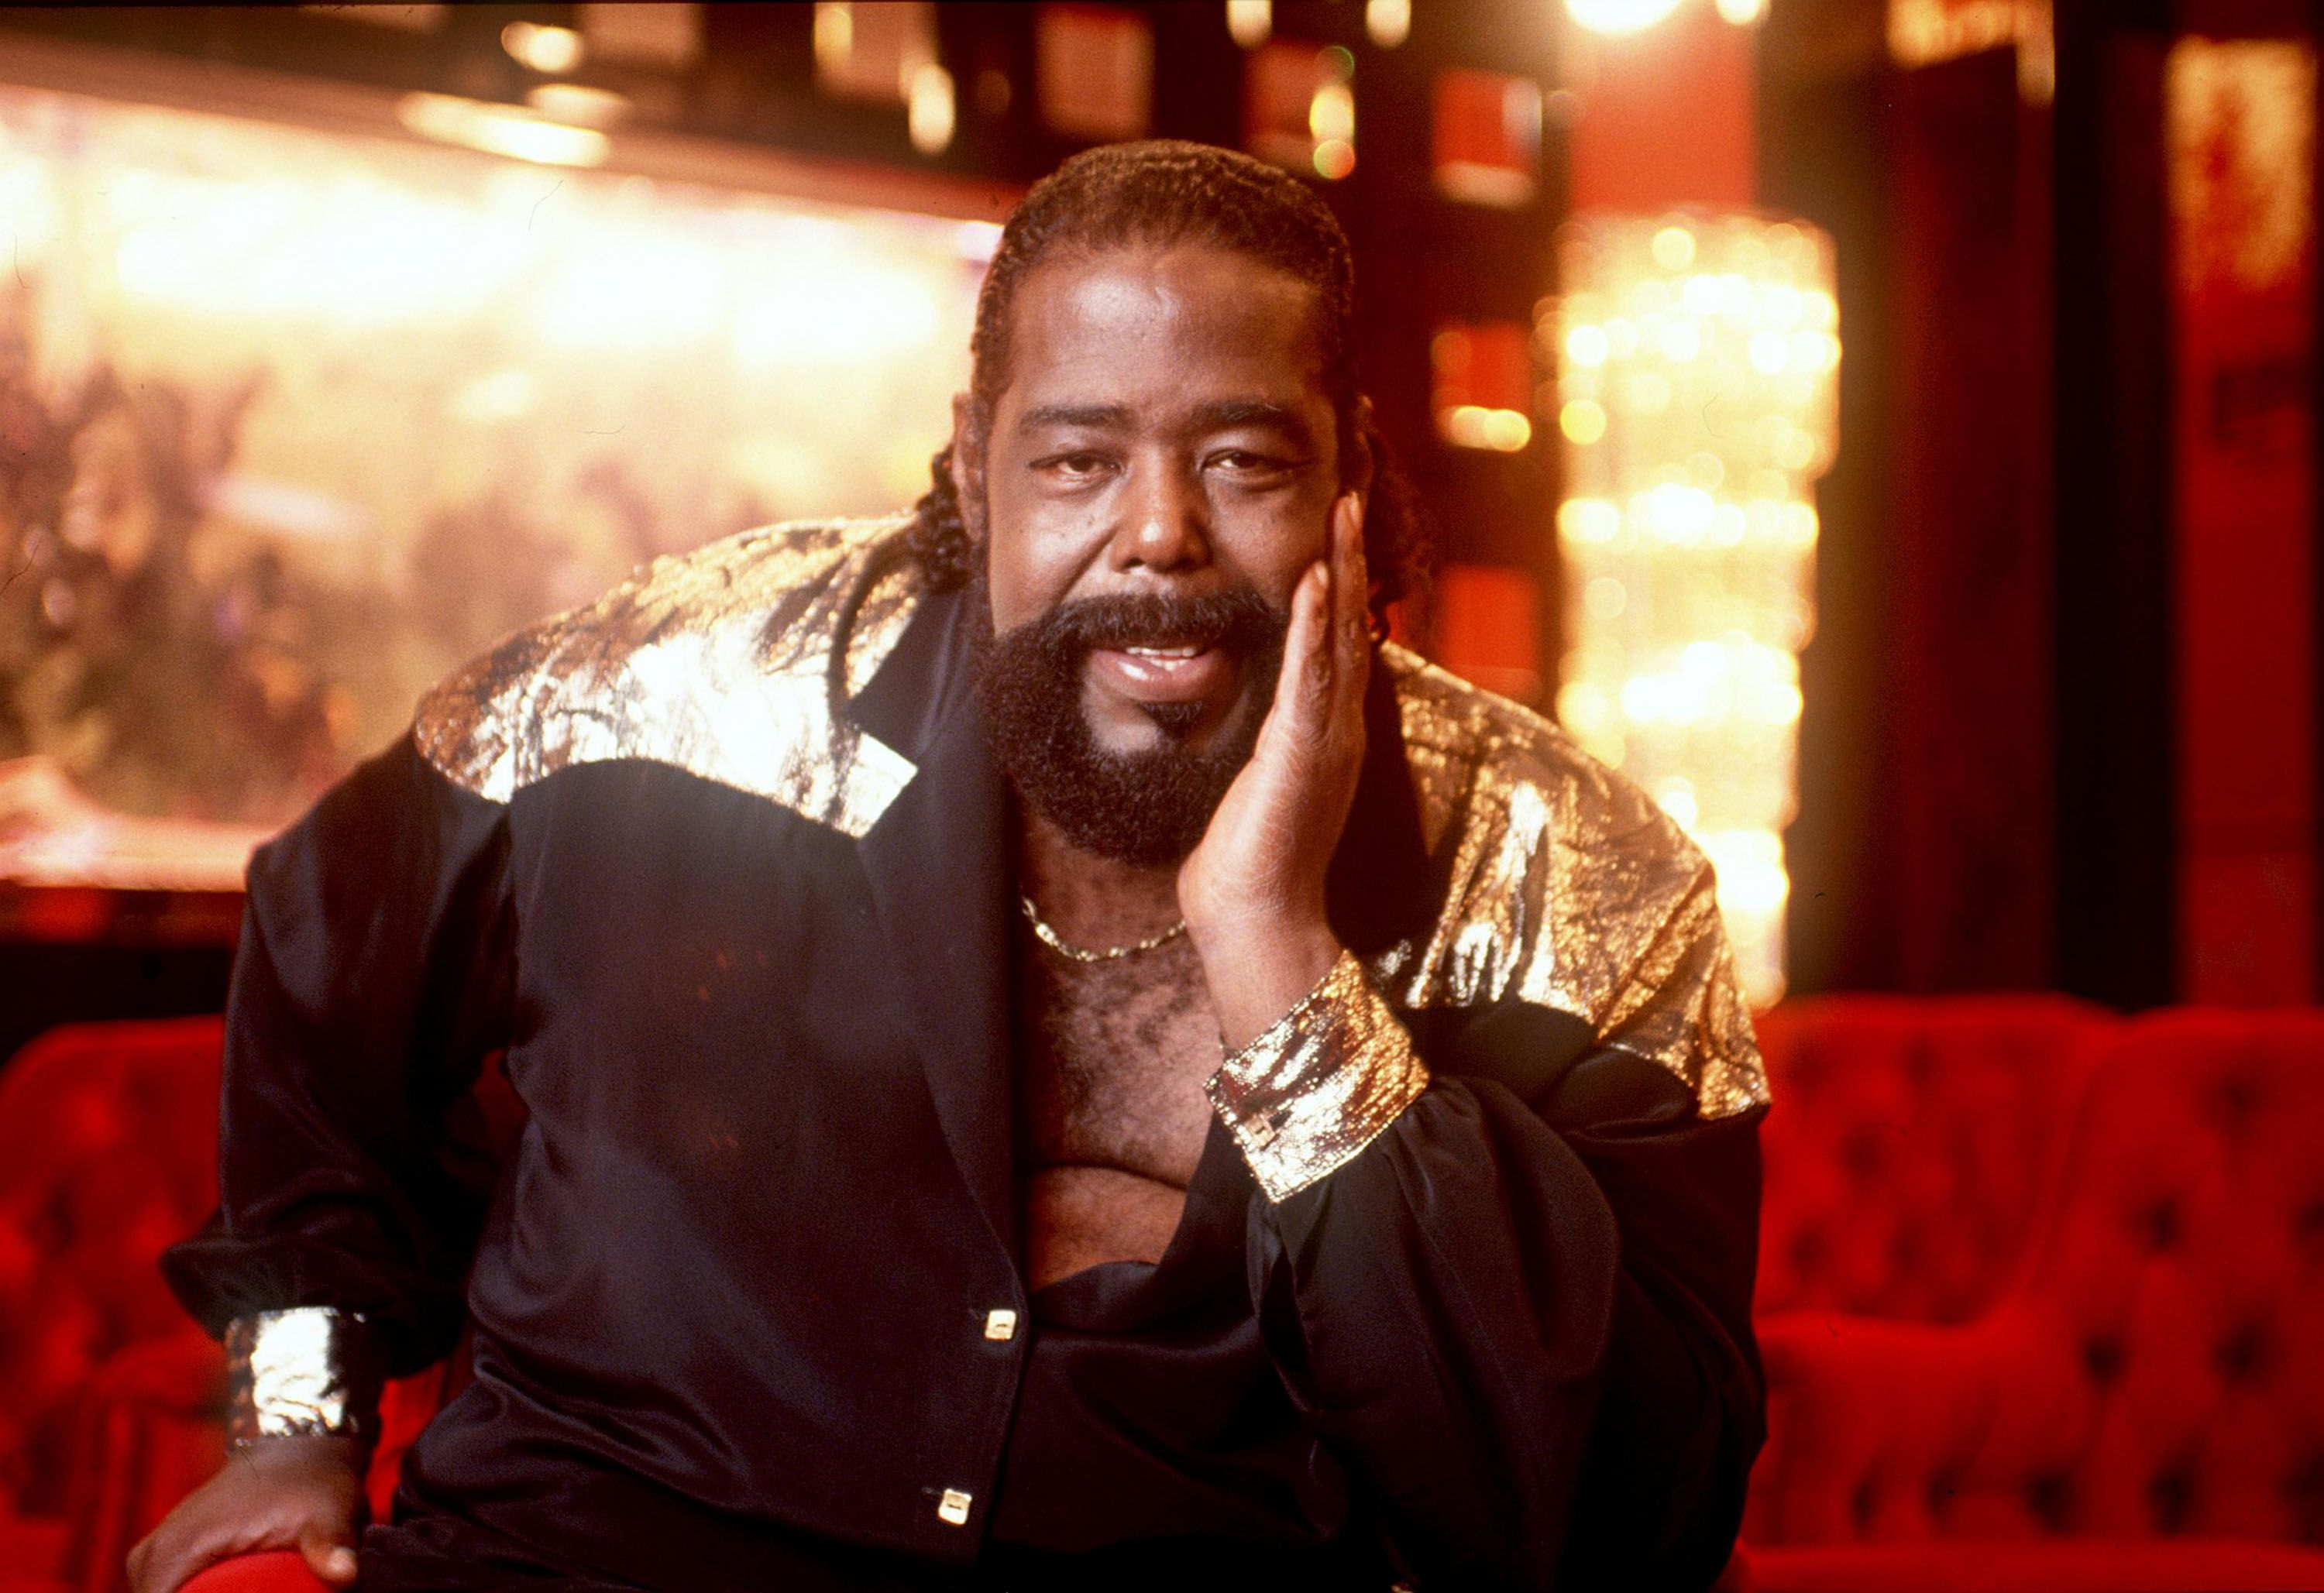 Barry White poses for a portrait at his home in Sherman Oaks, California in 1987 | Photo: Getty Images